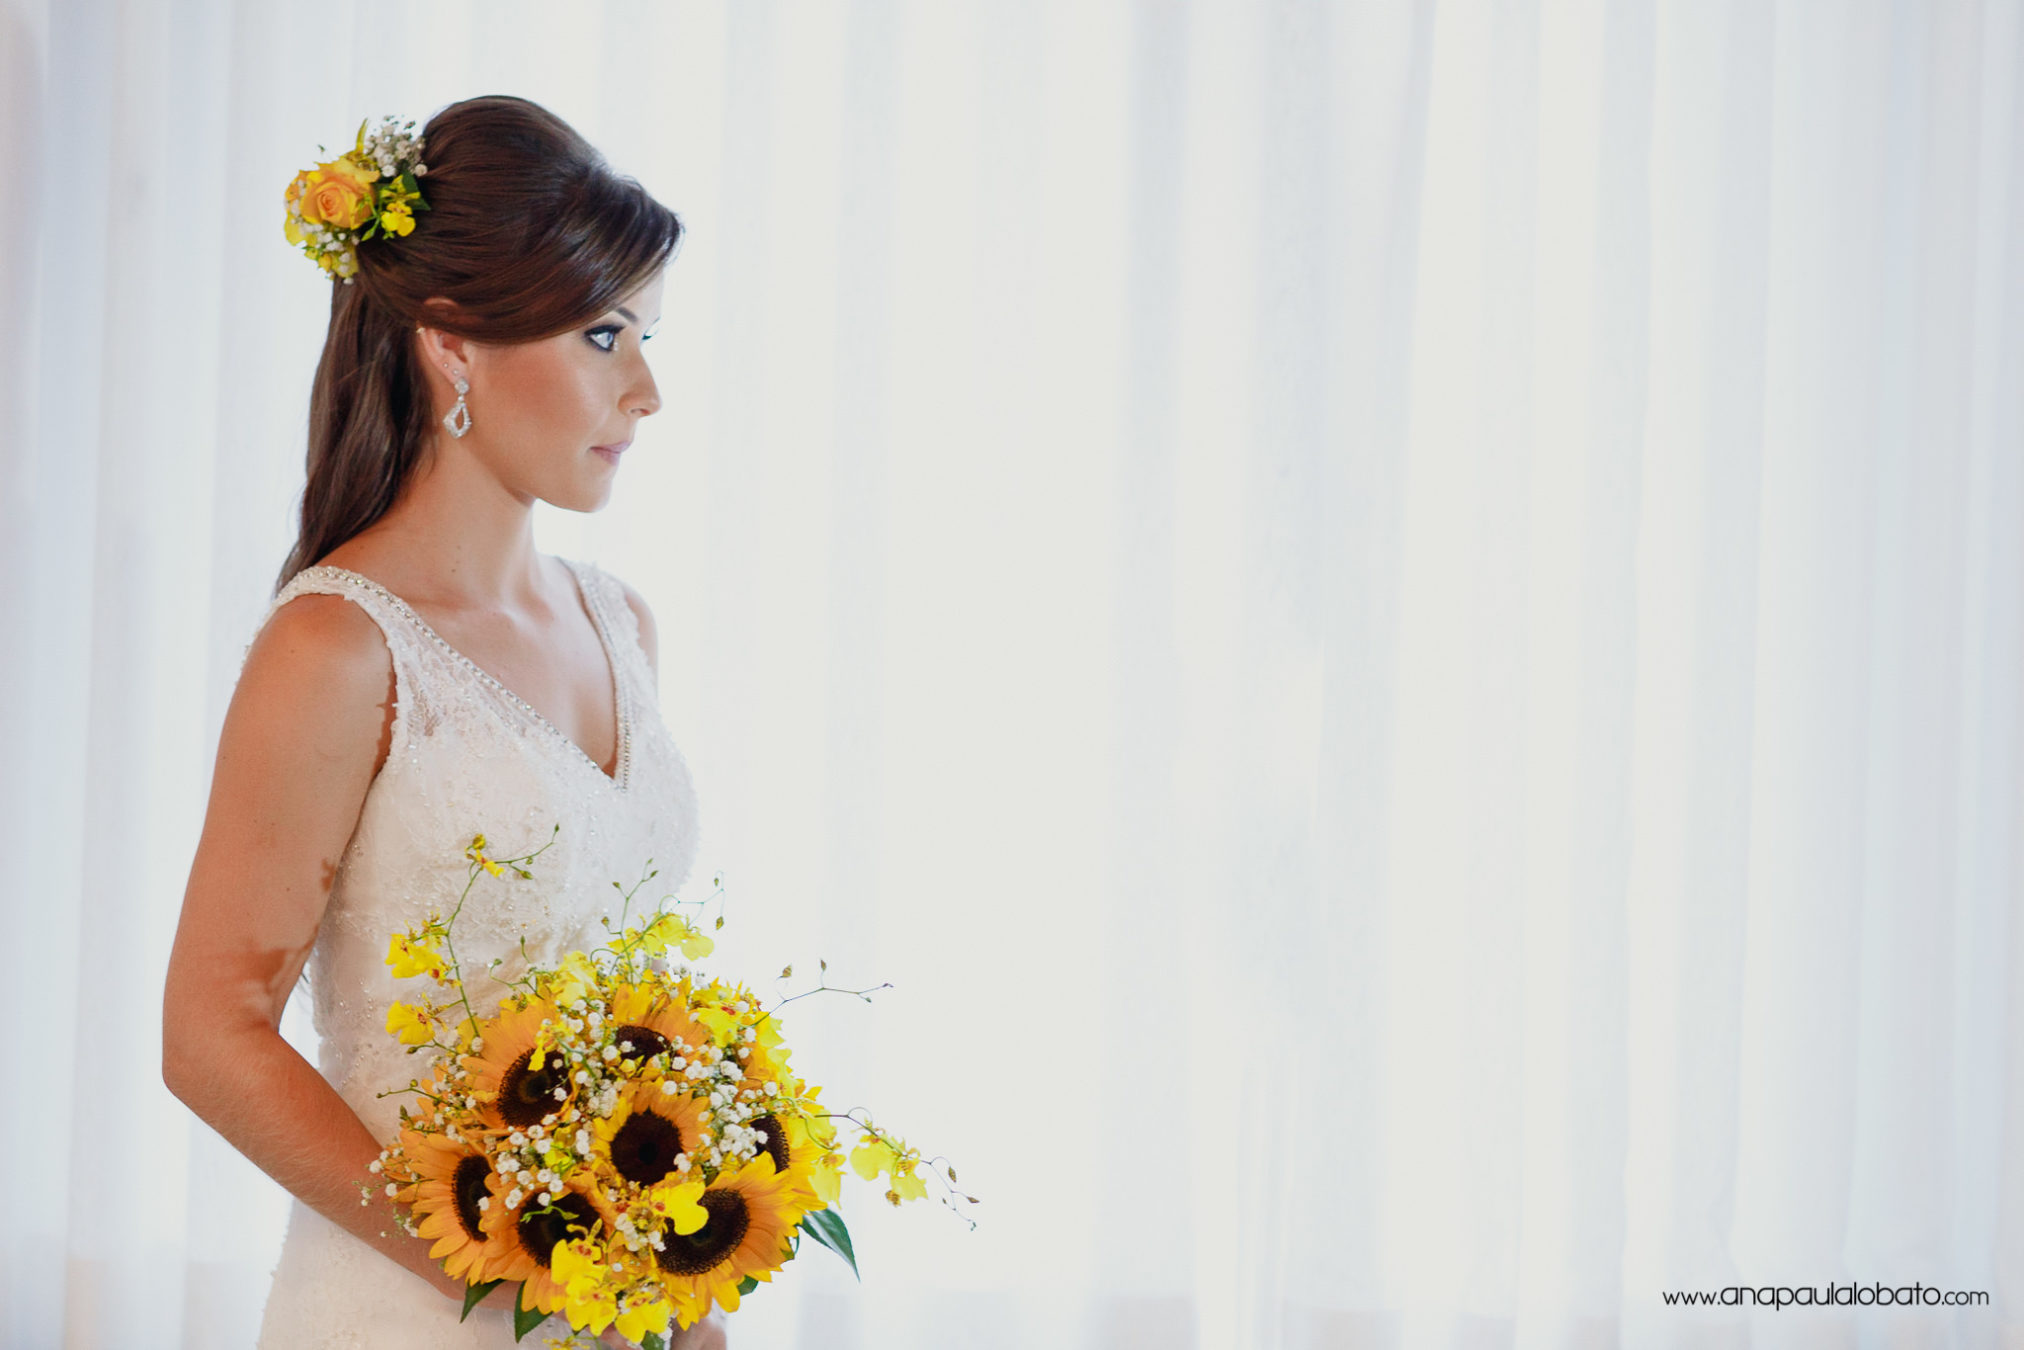 Emotional bride with her sunflowers bouquet